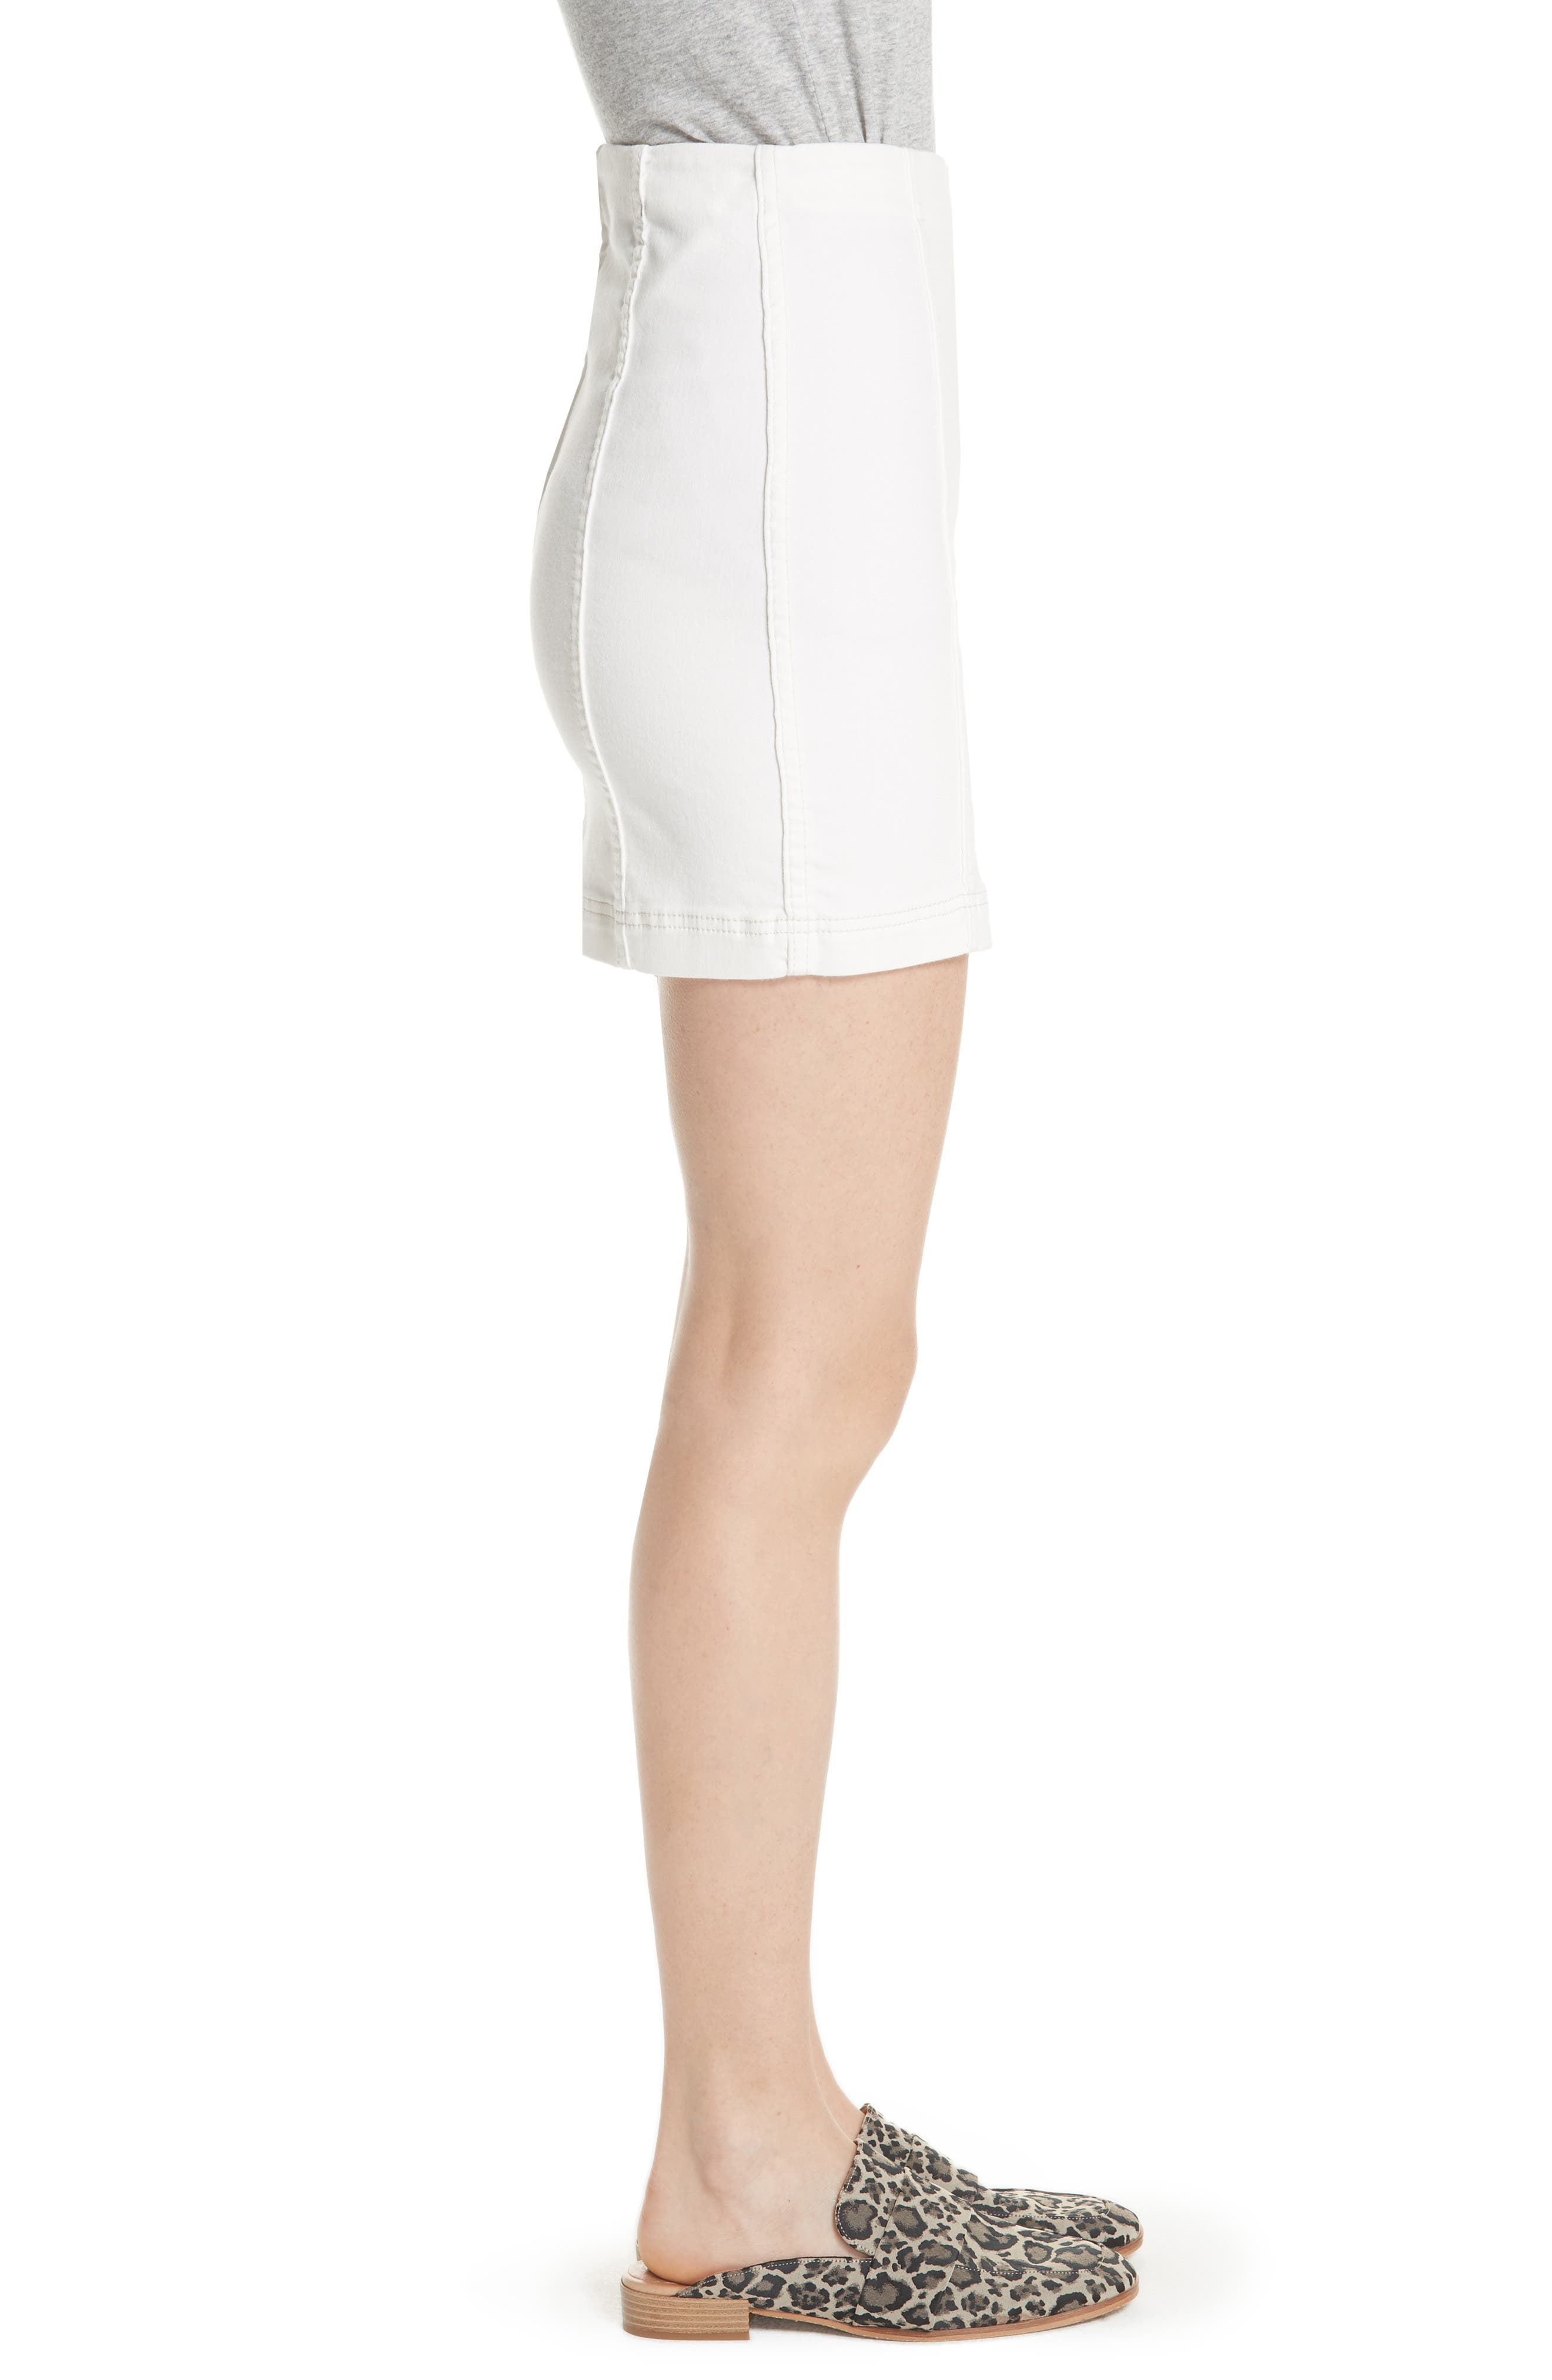 FREE PEOPLE, We the Free by Free People Modern Denim Skirt, Alternate thumbnail 4, color, 100